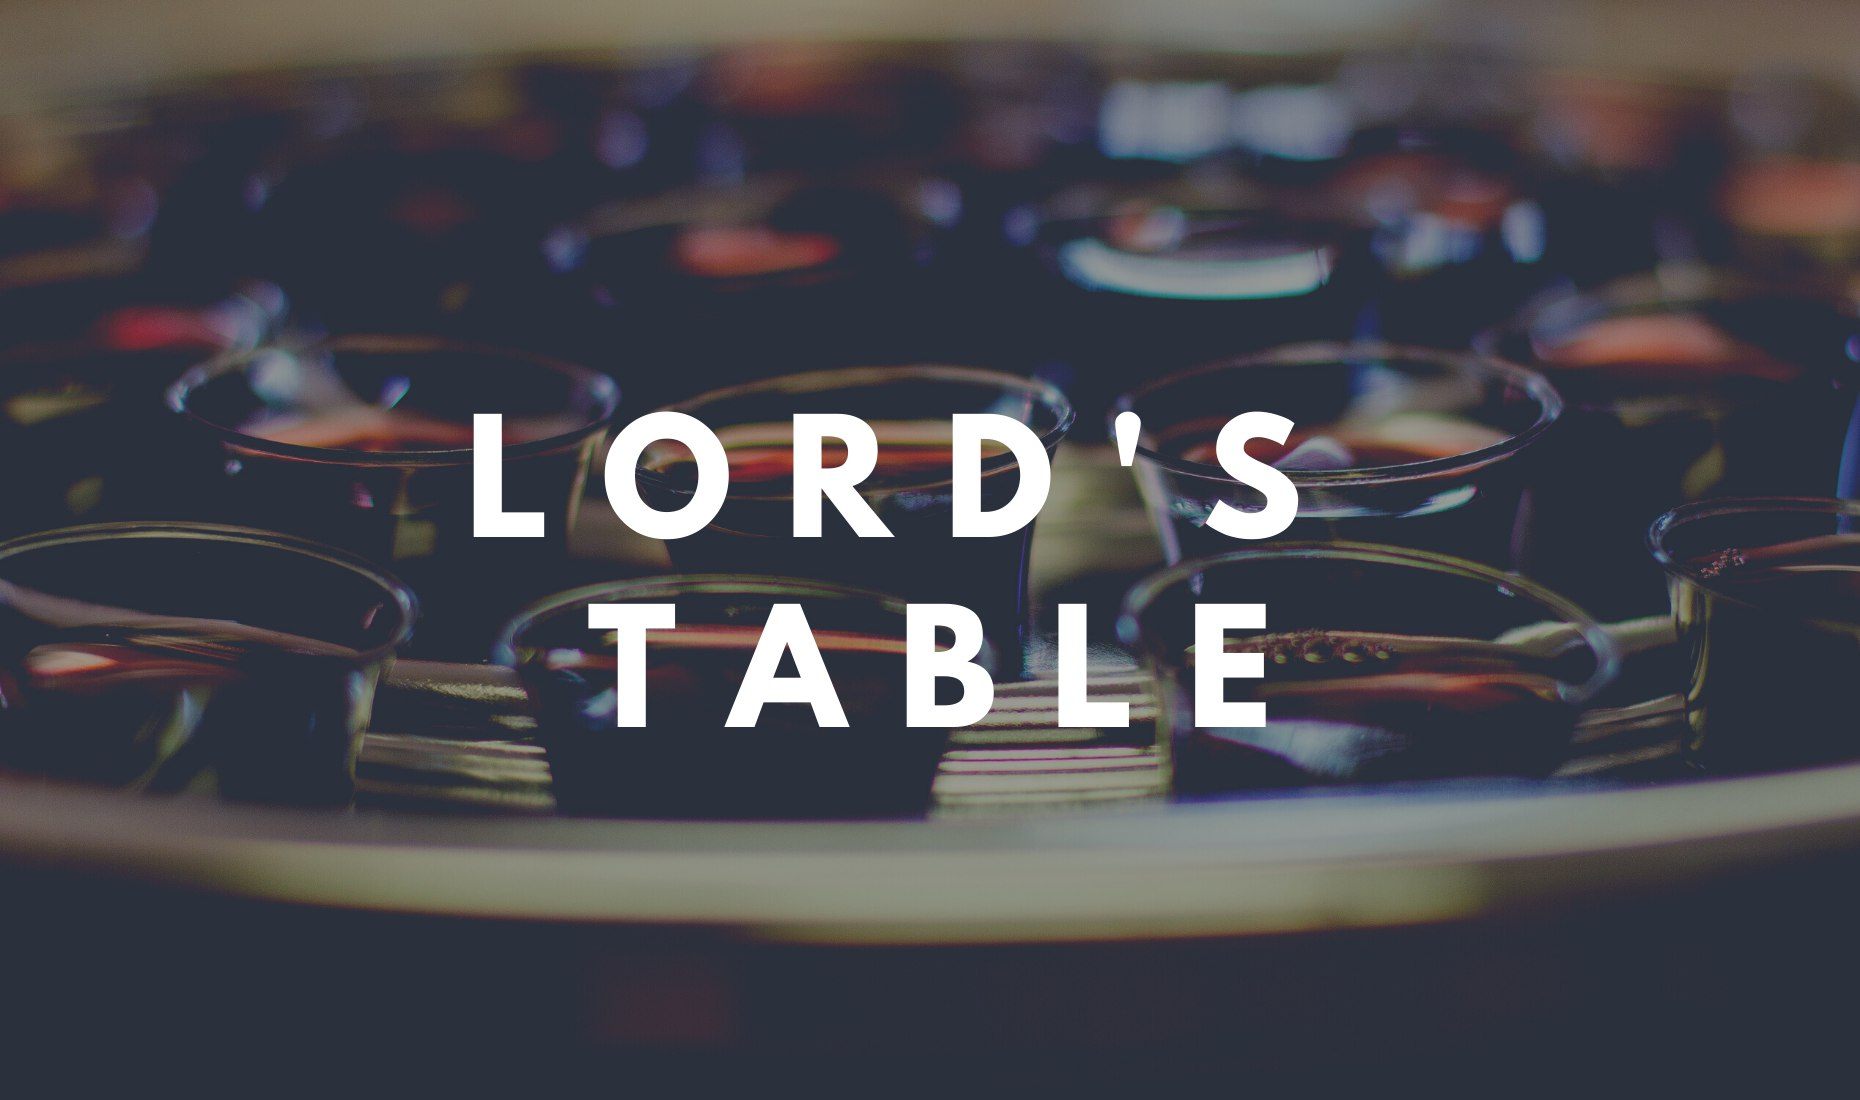 Lord's Table